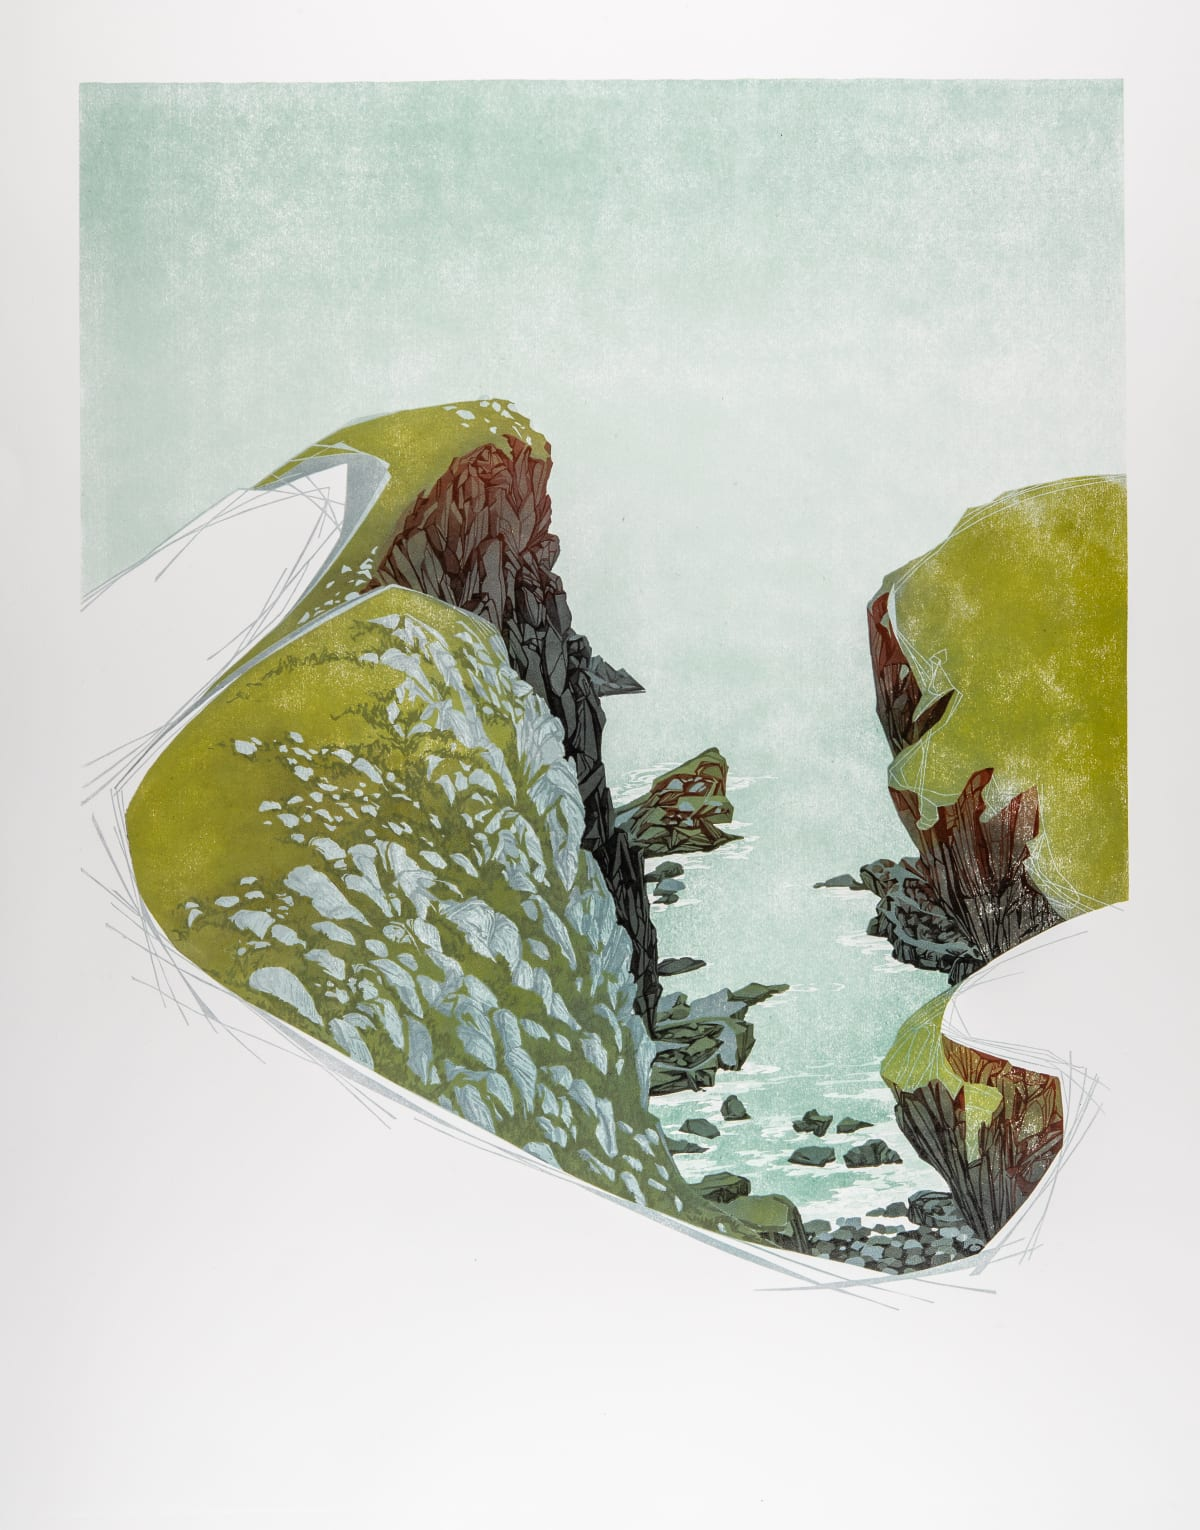 Laura Boswell Between Cliffs, St Abbs Head, 2020 Linocut 68 x 54 x 3 cm 26 3/4 x 21 1/4 x 1 1/8 in Edition 2 of 10